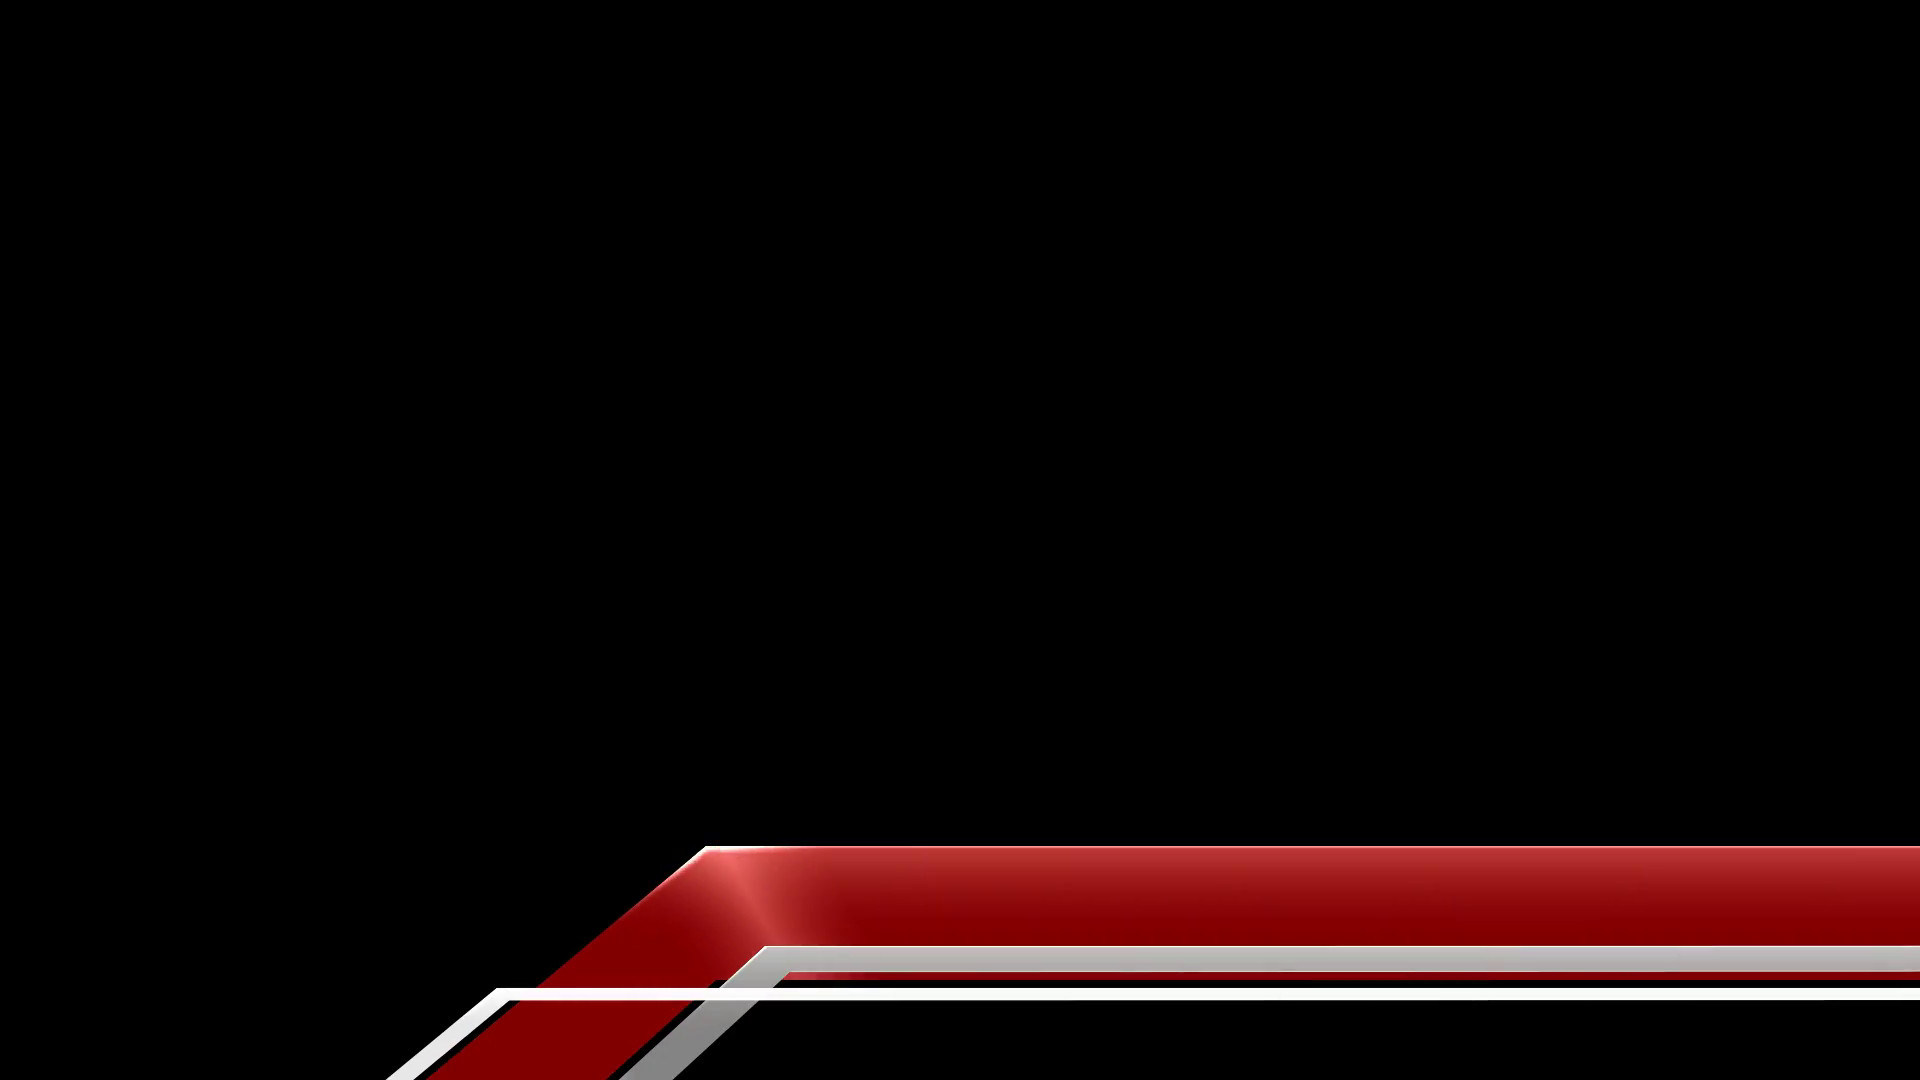 Free Lower Thirds Template Graphic Lower Third 9 Red Stock Video Footage